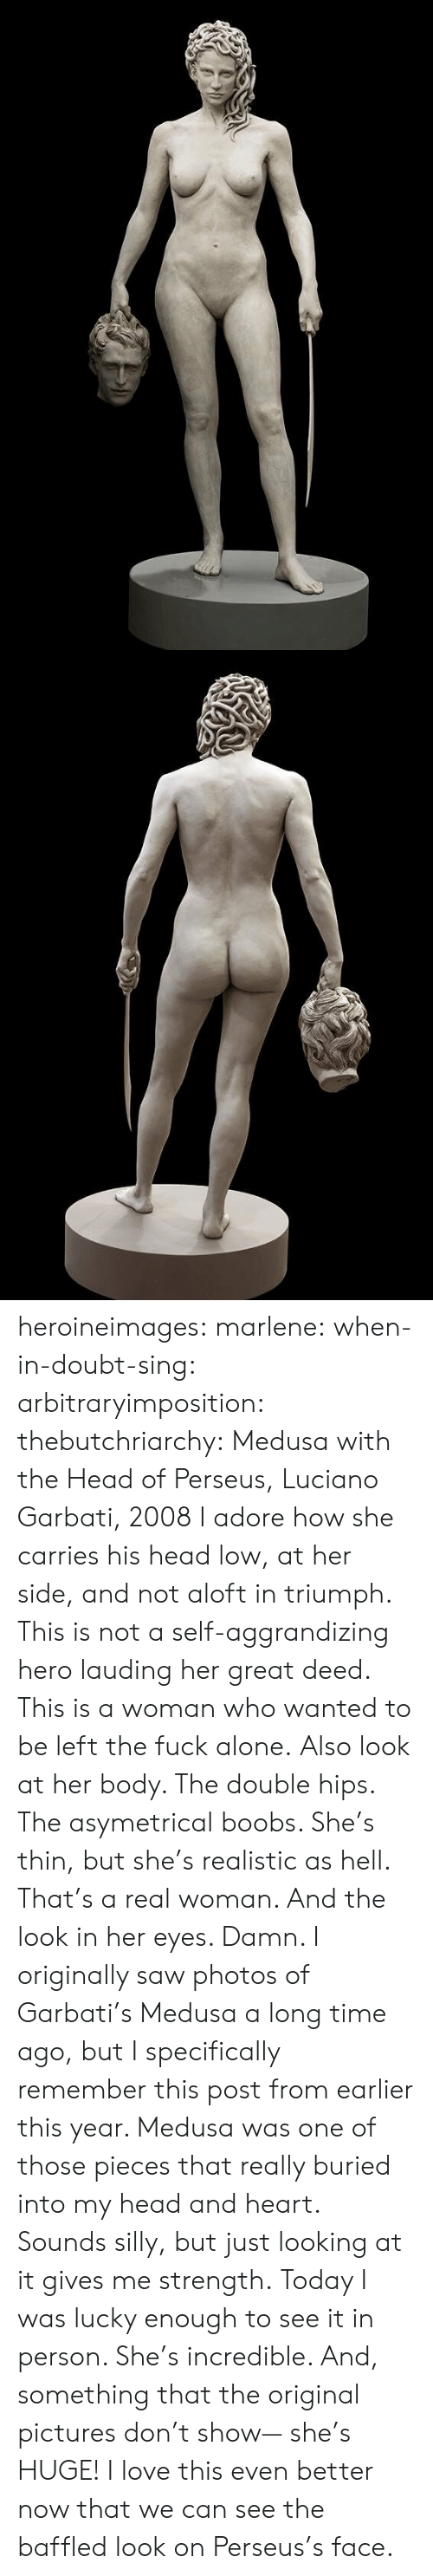 the double: heroineimages:  marlene:  when-in-doubt-sing:  arbitraryimposition:  thebutchriarchy: Medusa with the Head of Perseus, Luciano Garbati, 2008 I adore how she carries his head low, at her side, and not aloft in triumph.  This is not a self-aggrandizing hero lauding her great deed. This is a woman who wanted to be left the fuck alone.   Also look at her body. The double hips. The asymetrical boobs. She's thin, but she's realistic as hell. That's a real woman.  And the look in her eyes. Damn.   I originally saw photos of Garbati's Medusa a long time ago, but I specifically remember this post from earlier this year. Medusa was one of those pieces that really buried into my head and heart. Sounds silly, but just looking at it gives me strength. Today I was lucky enough to see it in person. She's incredible. And, something that the original pictures don't show— she's HUGE!    I love this even better now that we can see the baffled look on Perseus's face.